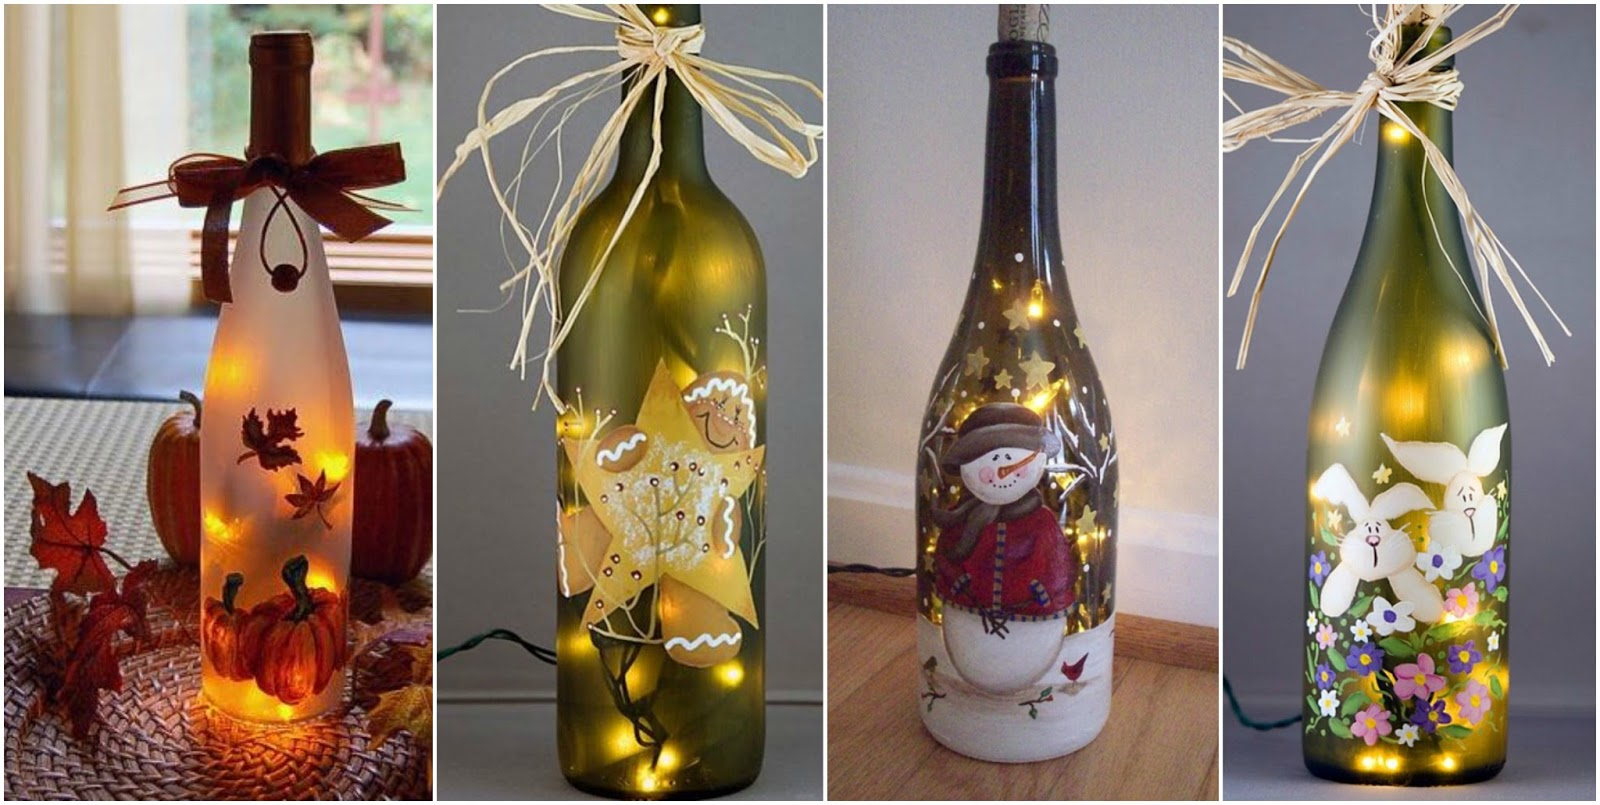 Botellas De Vidrio Decoradas Tutorial Para Reciclar Y Decorar Botellas De Vidrio Con